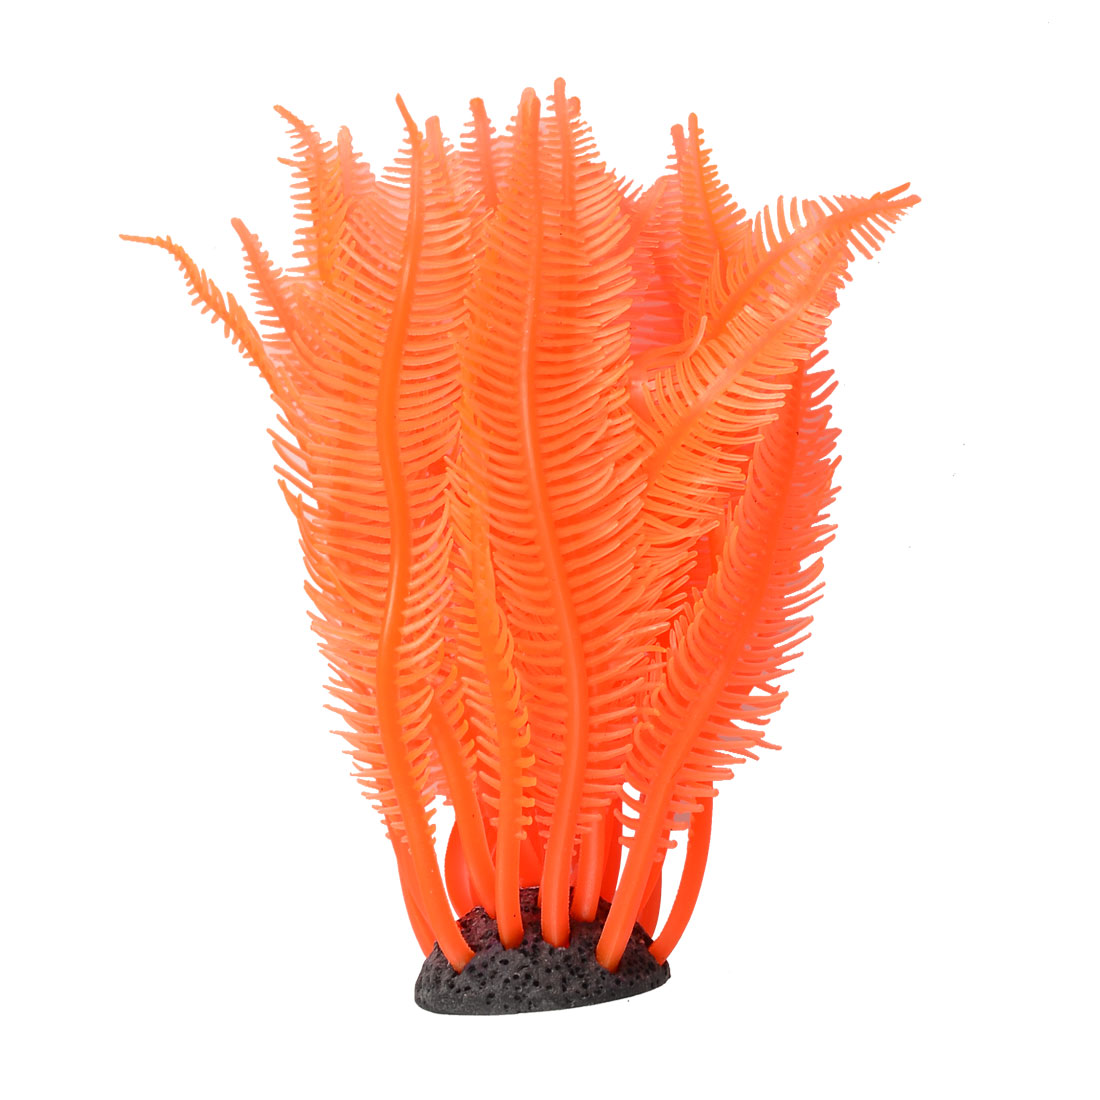 Aquarium Fish Tank Resin Base Orange Silicone Coral Decoration Ornament 4.5""